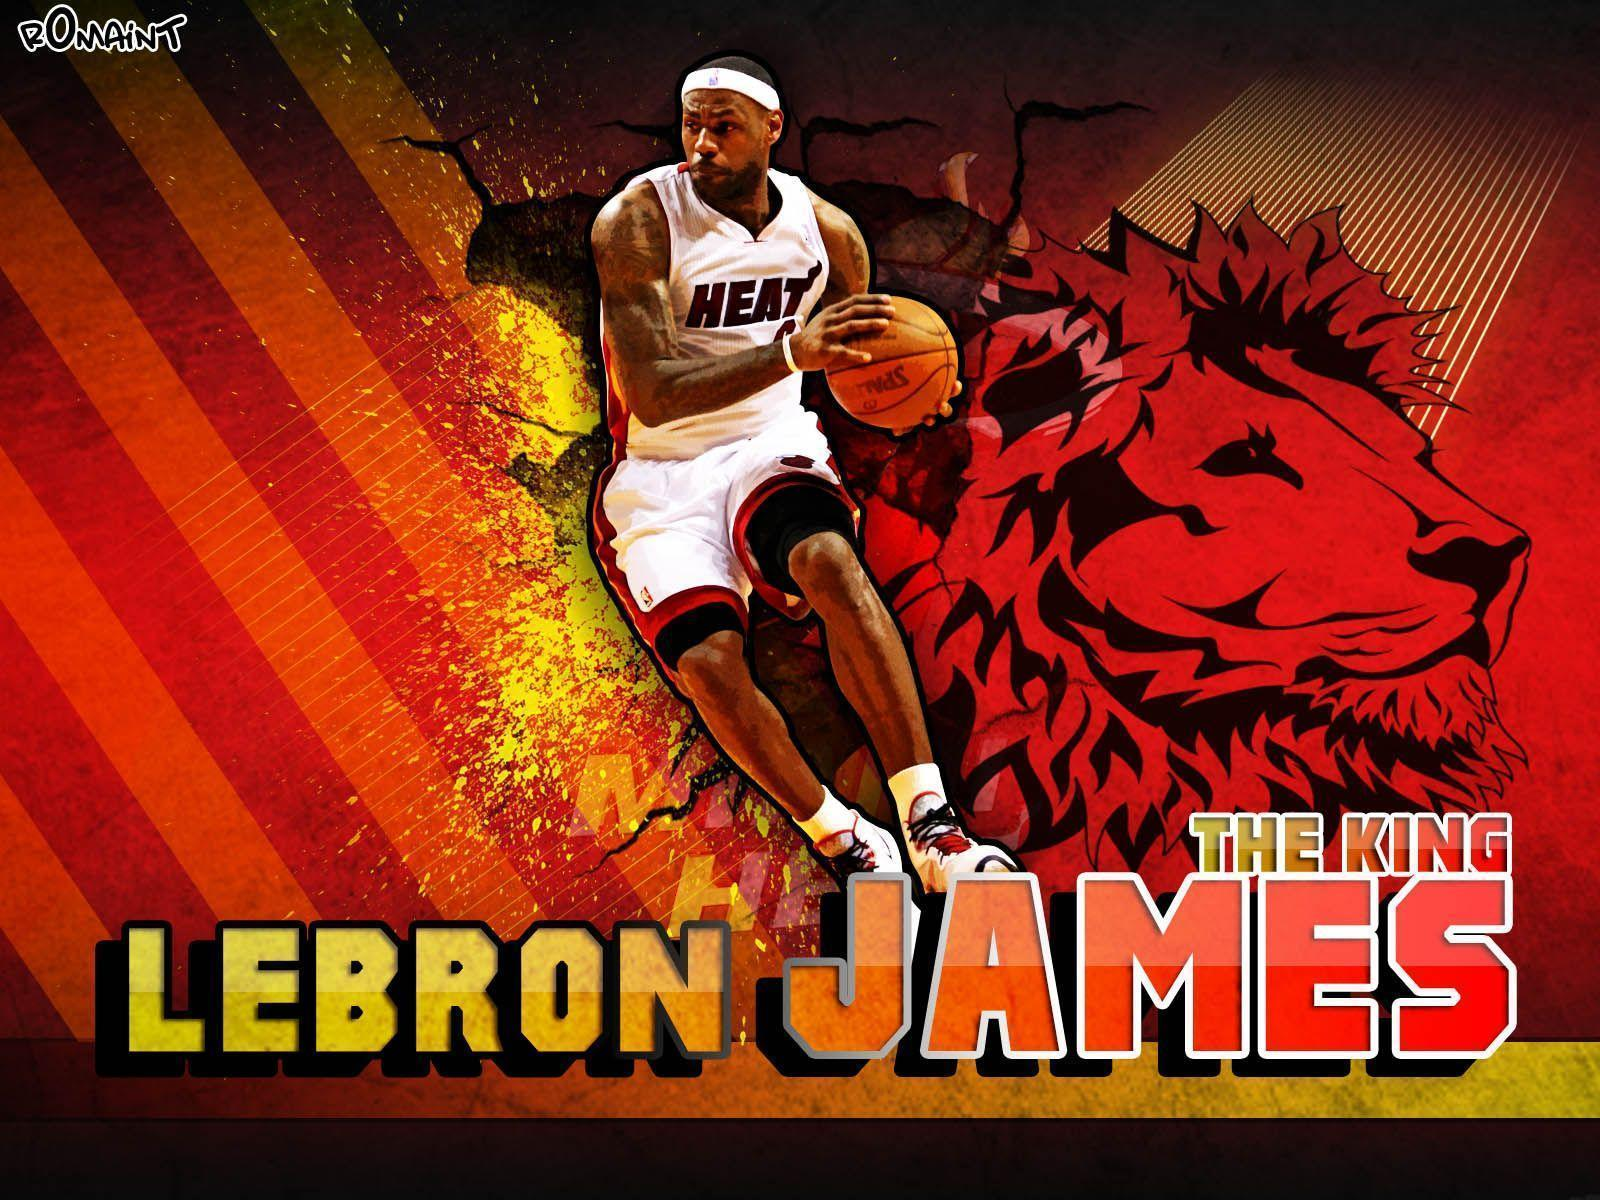 LeBron James Wallpaper Heat, Full HD 1080p, Best HD LeBron James ...